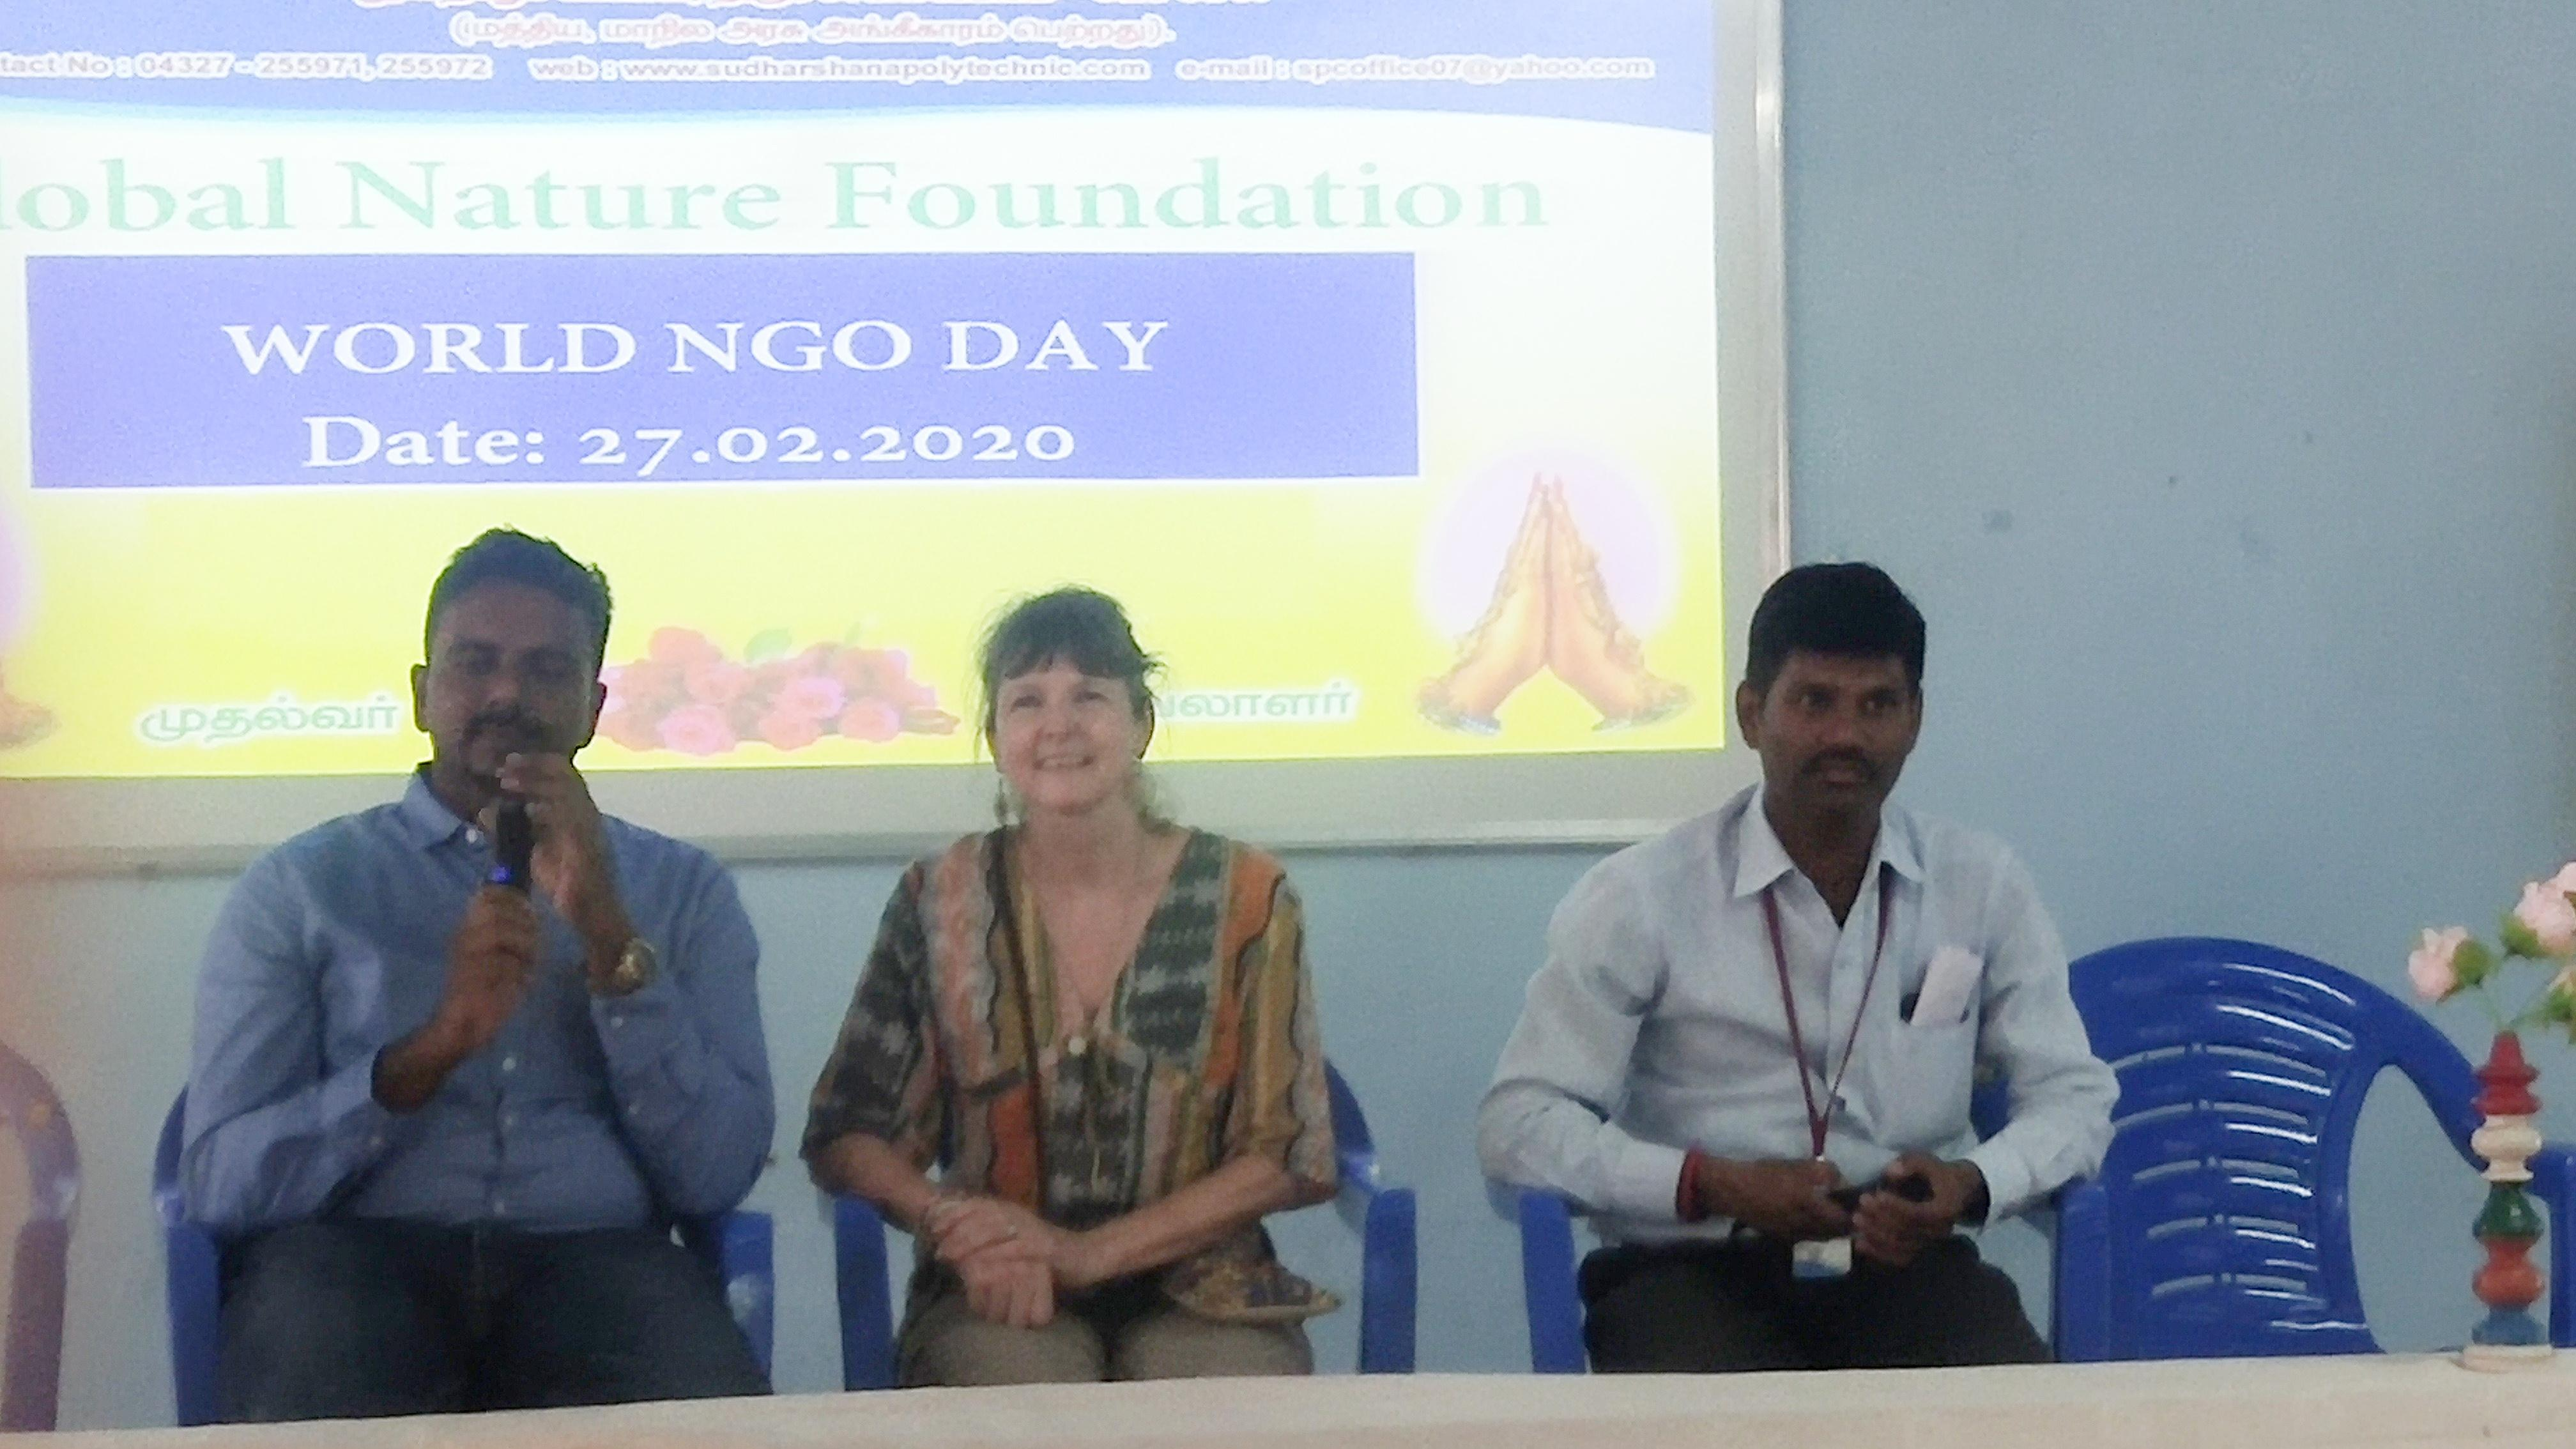 THE WORLD NGO DAY CELEBRATION